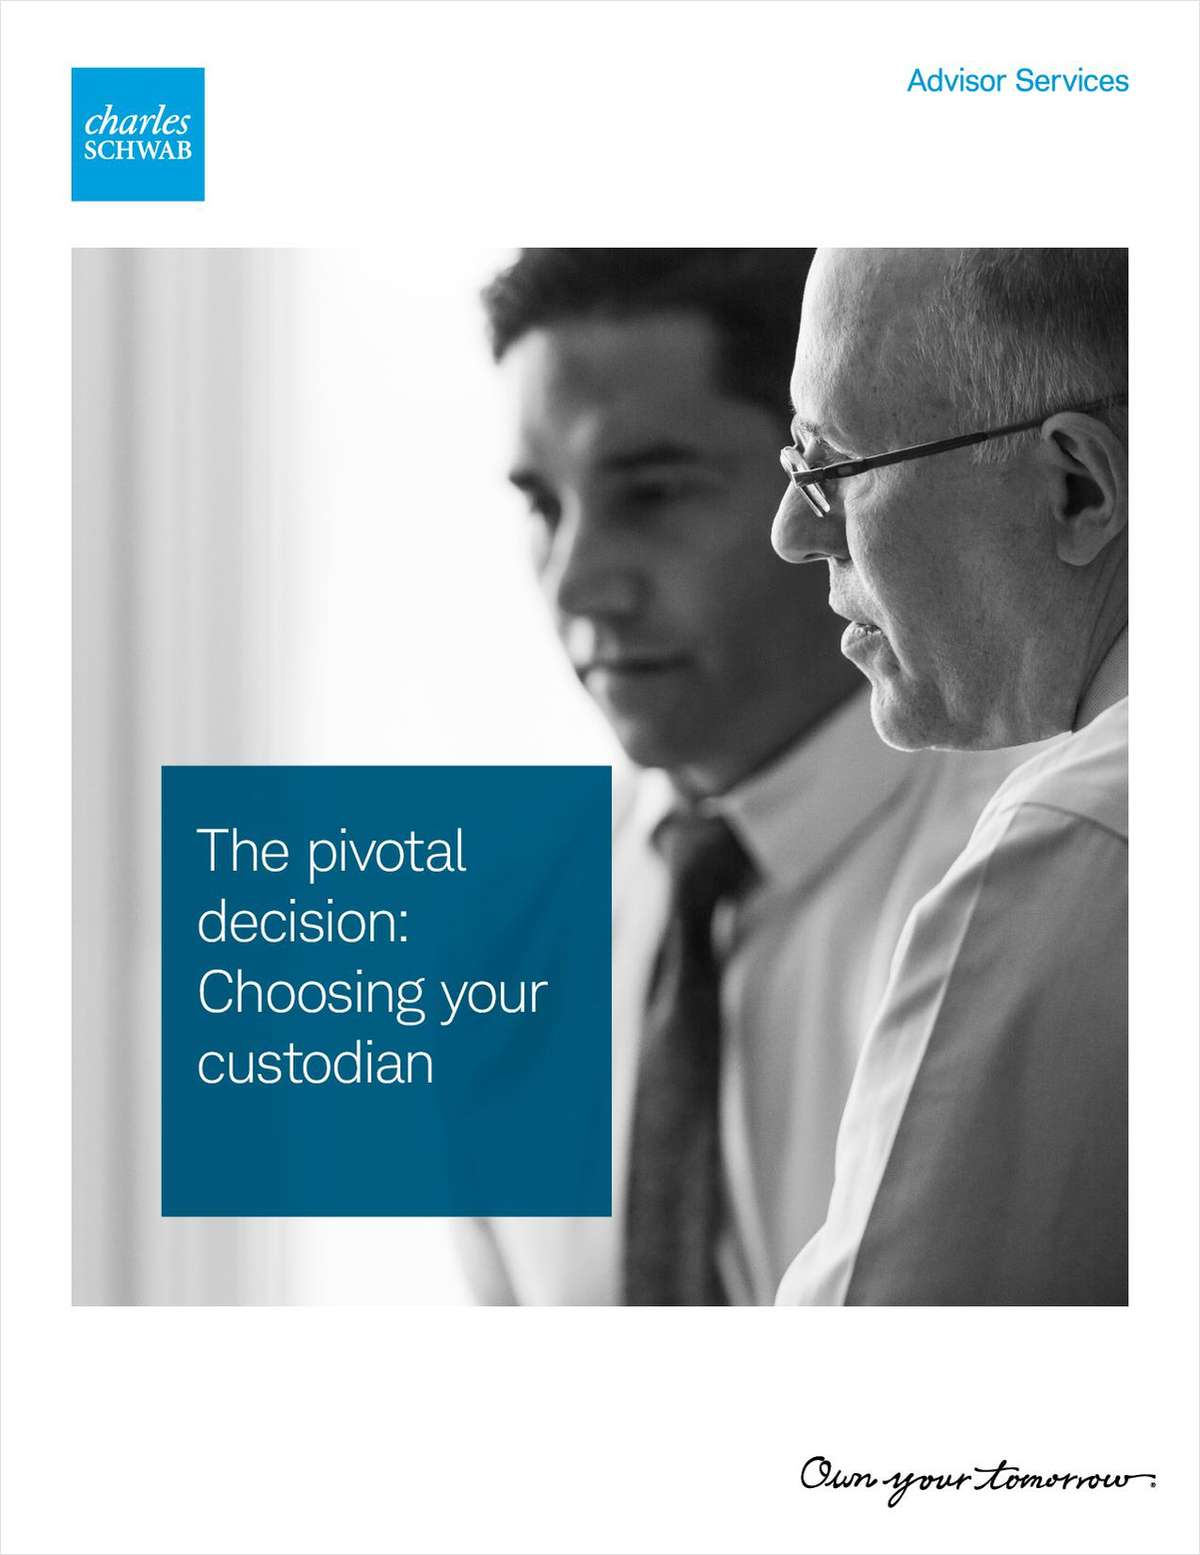 The pivotal decision: Choosing your custodian